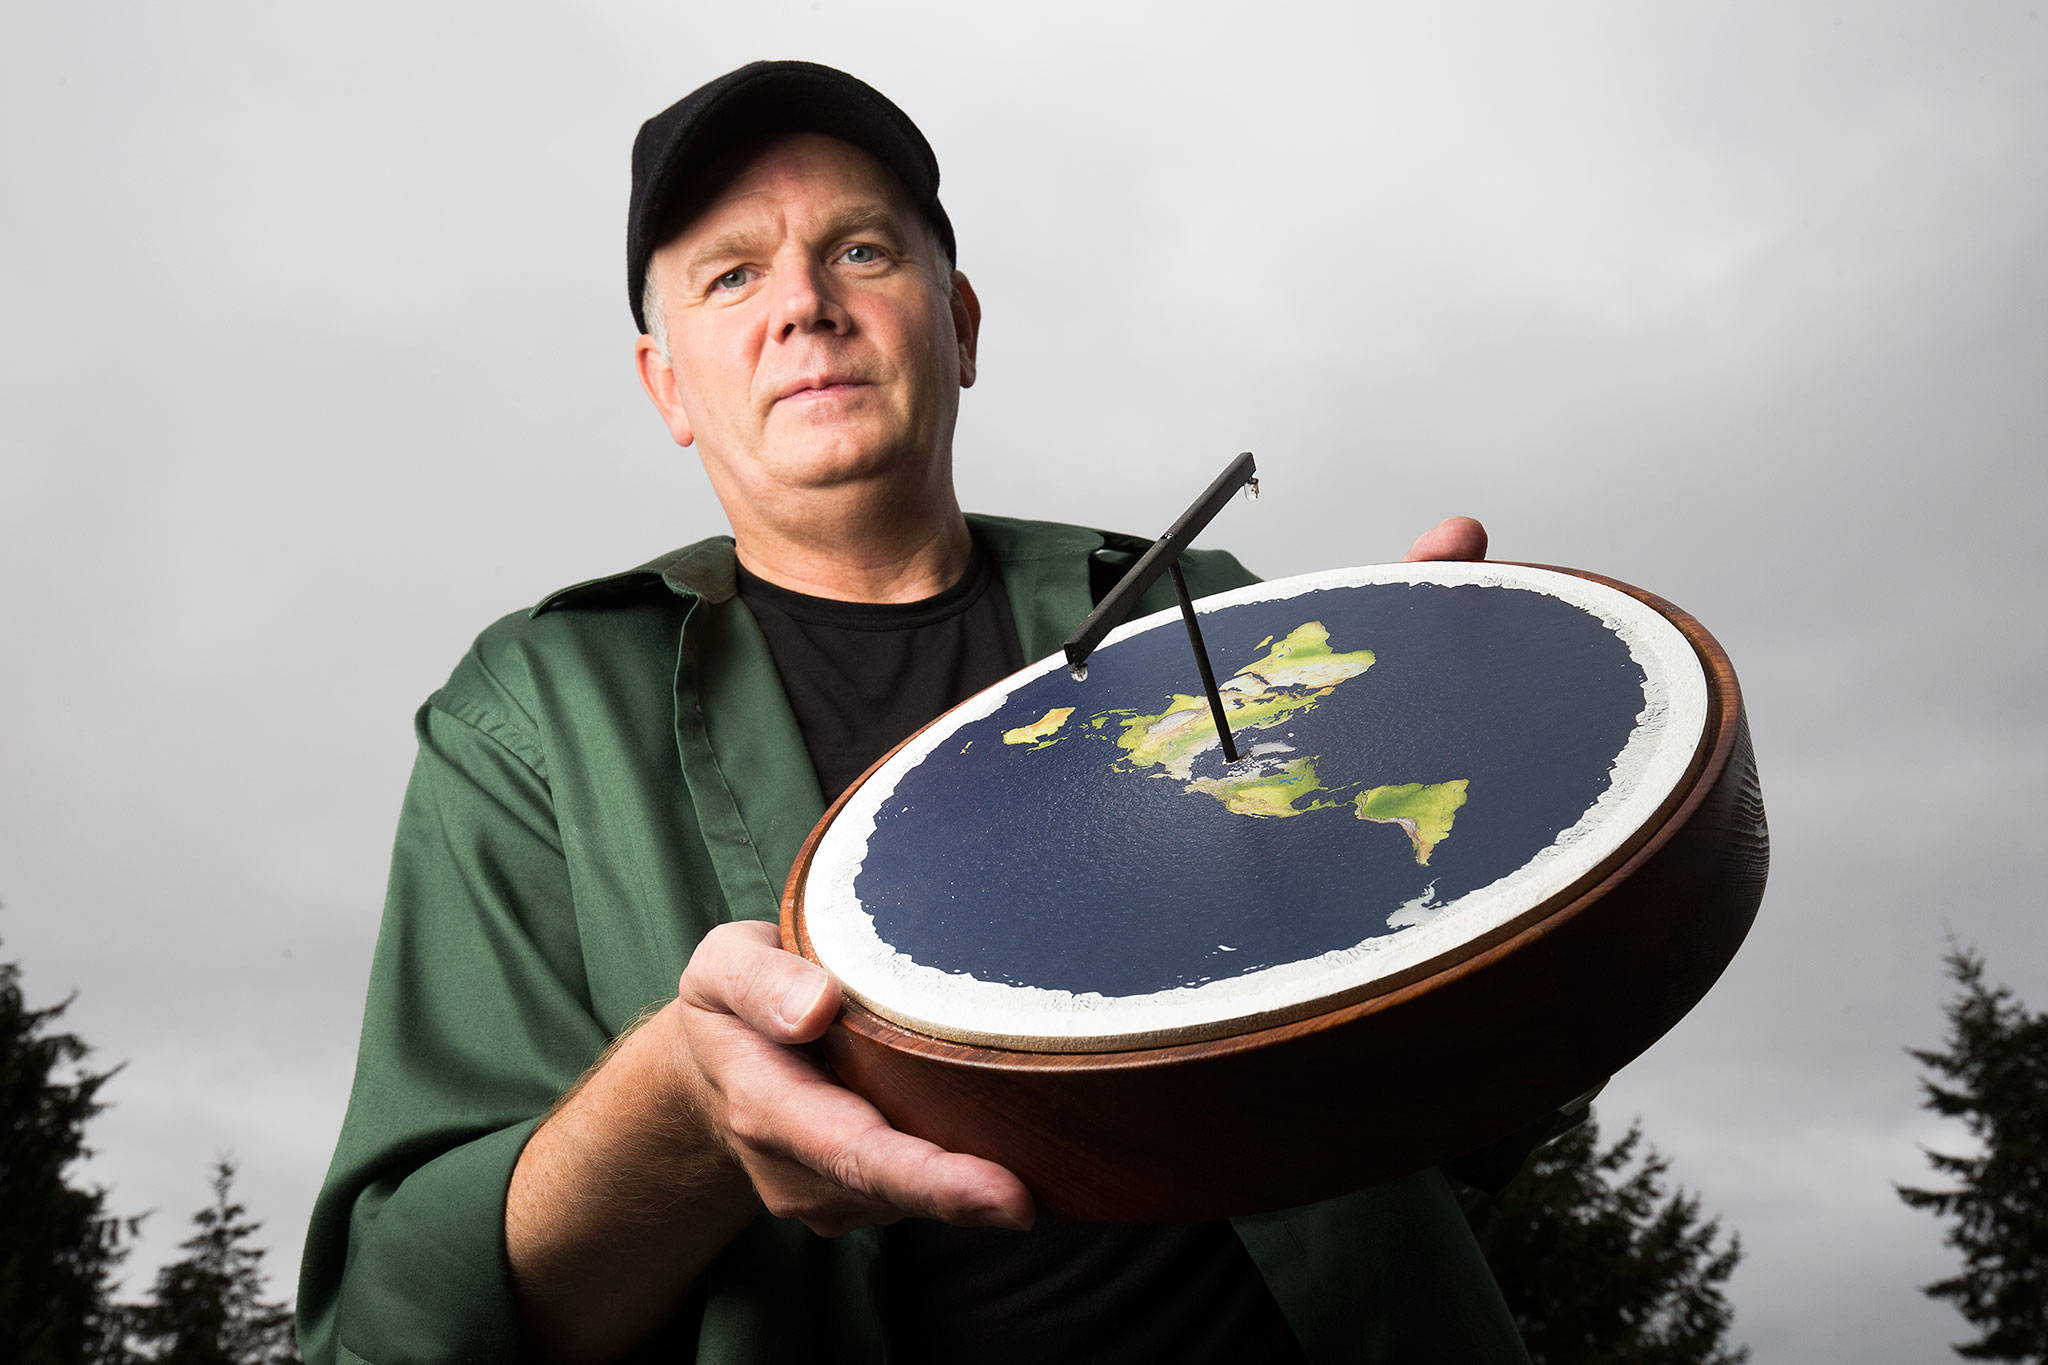 Mark Sargent holds a representative model of a flat planet. The Whidbey Island native has made a name for himself as a flat Earth spokesman. (Andy Bronson / The Herald)